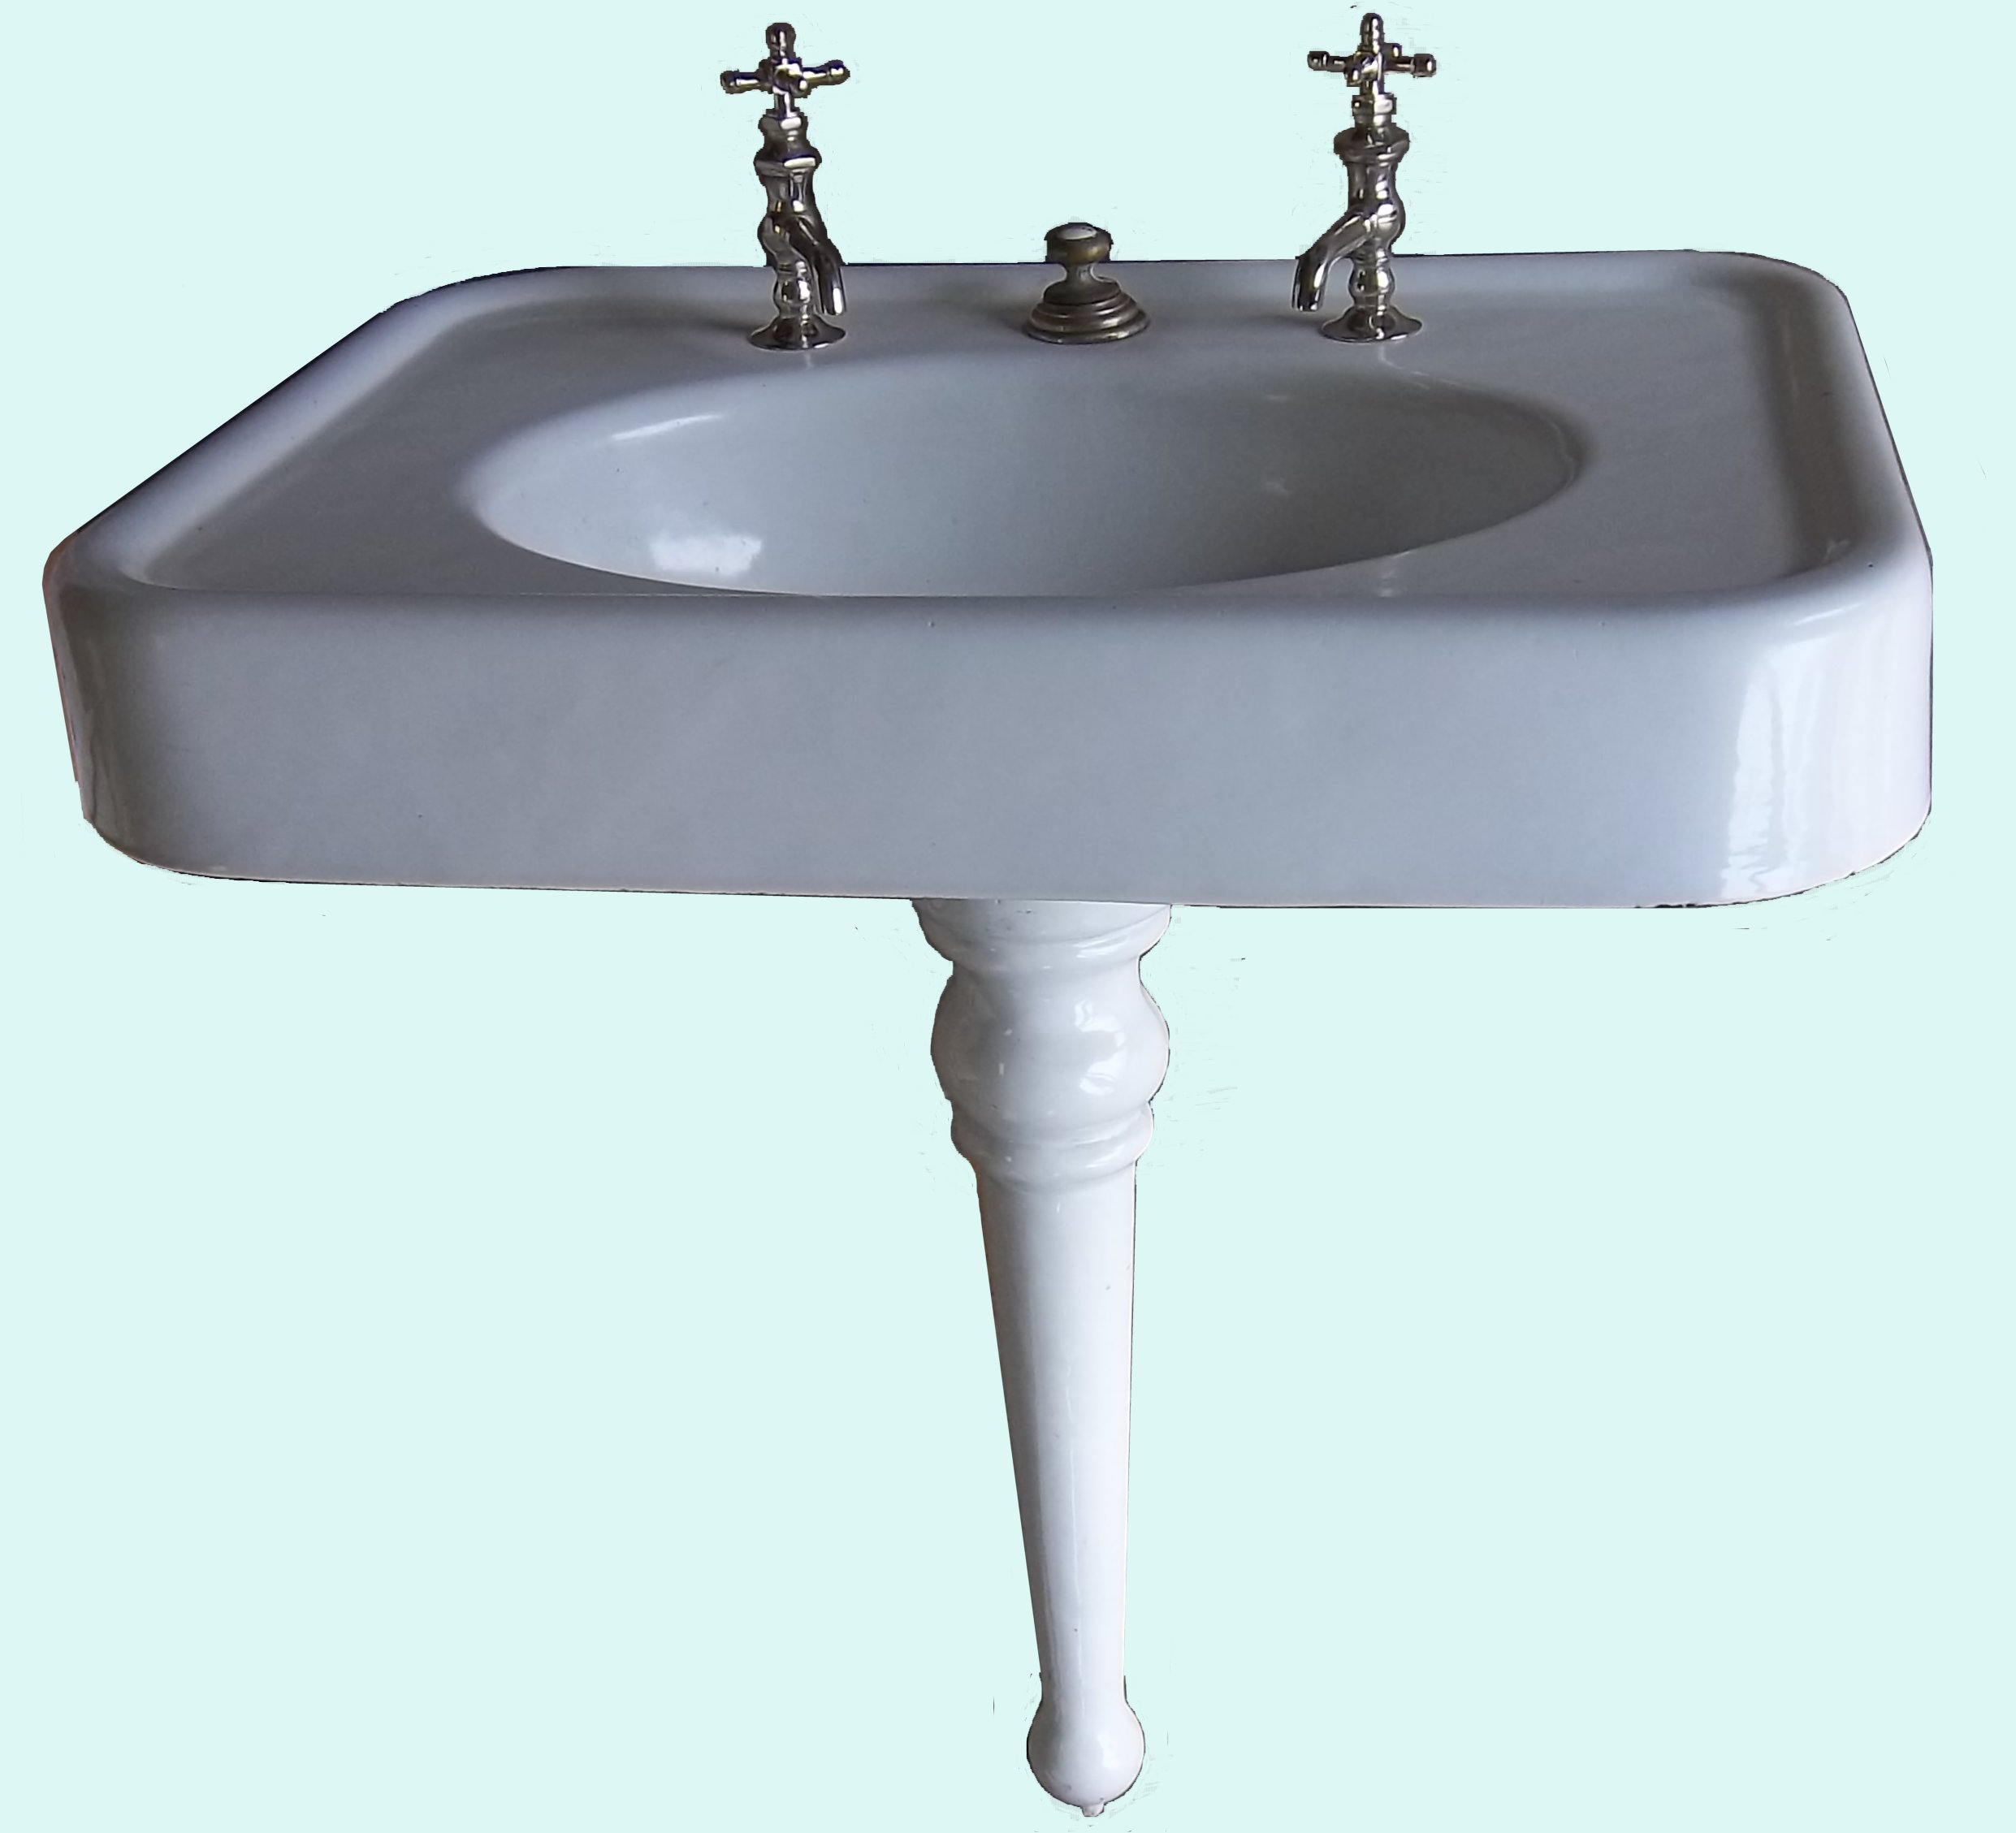 Pedestal sinks vintagebathroom for Pedestal sink with metal legs